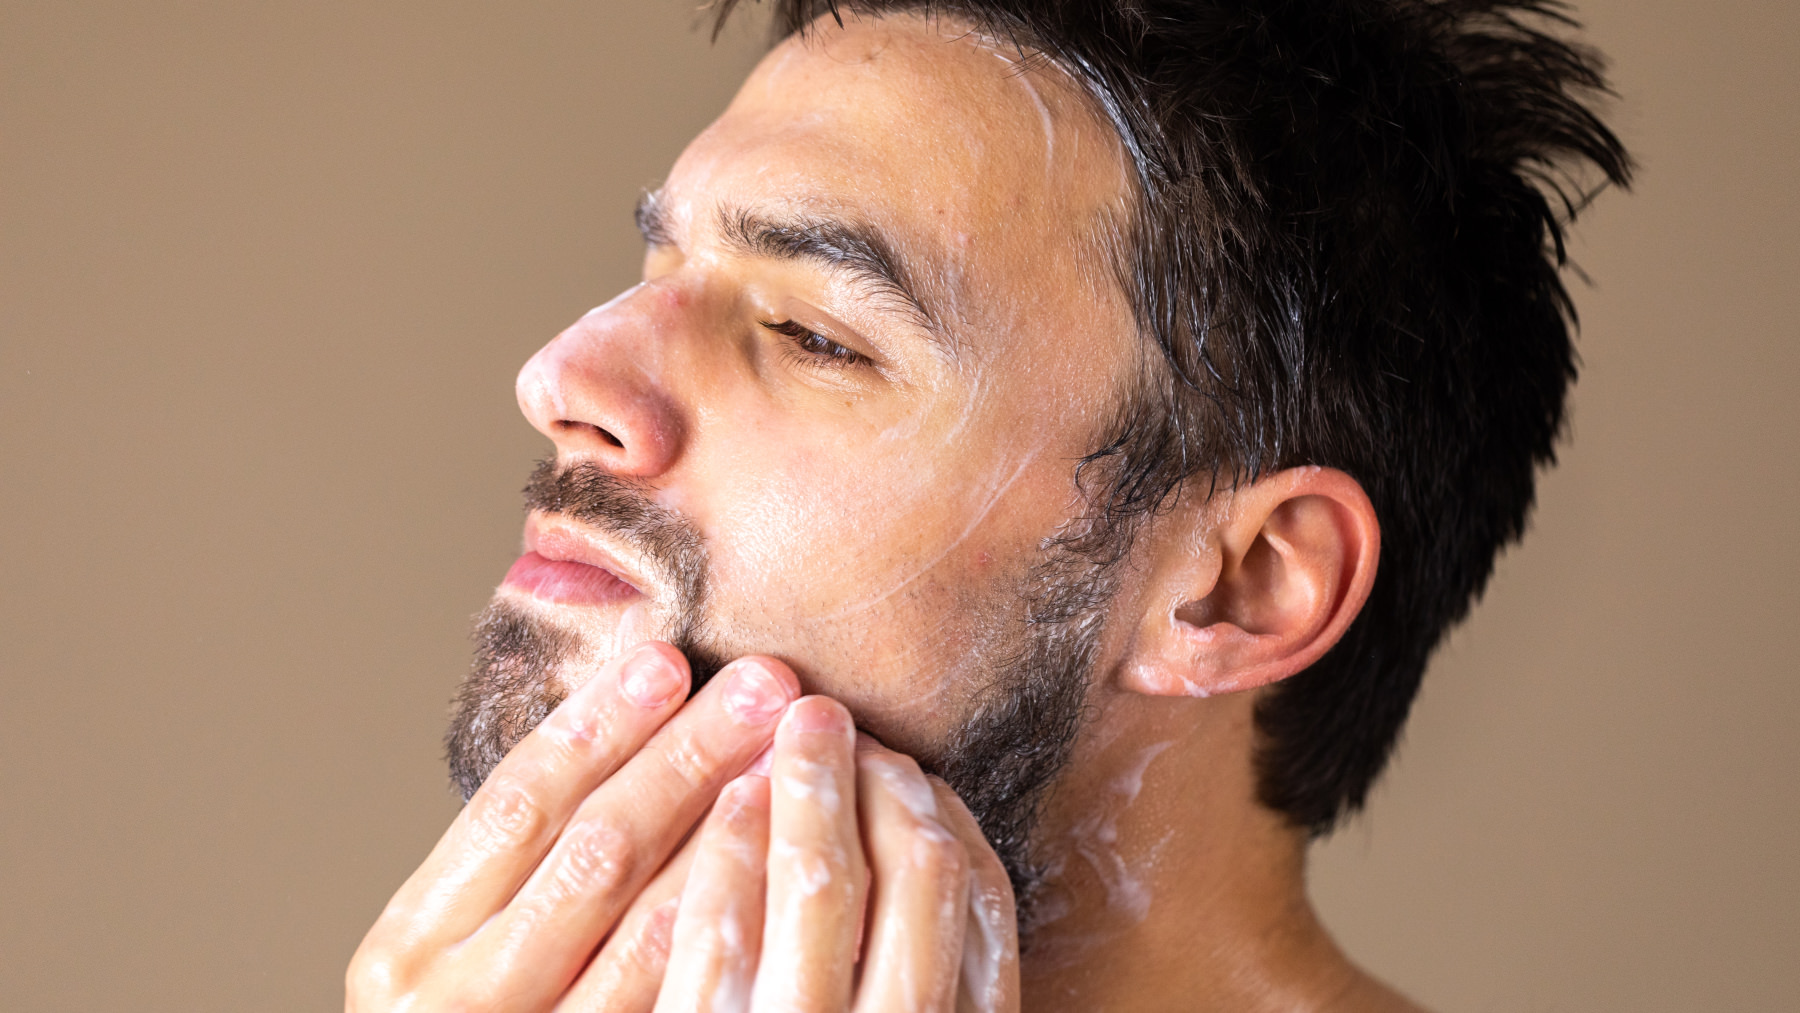 A man applying product on her face